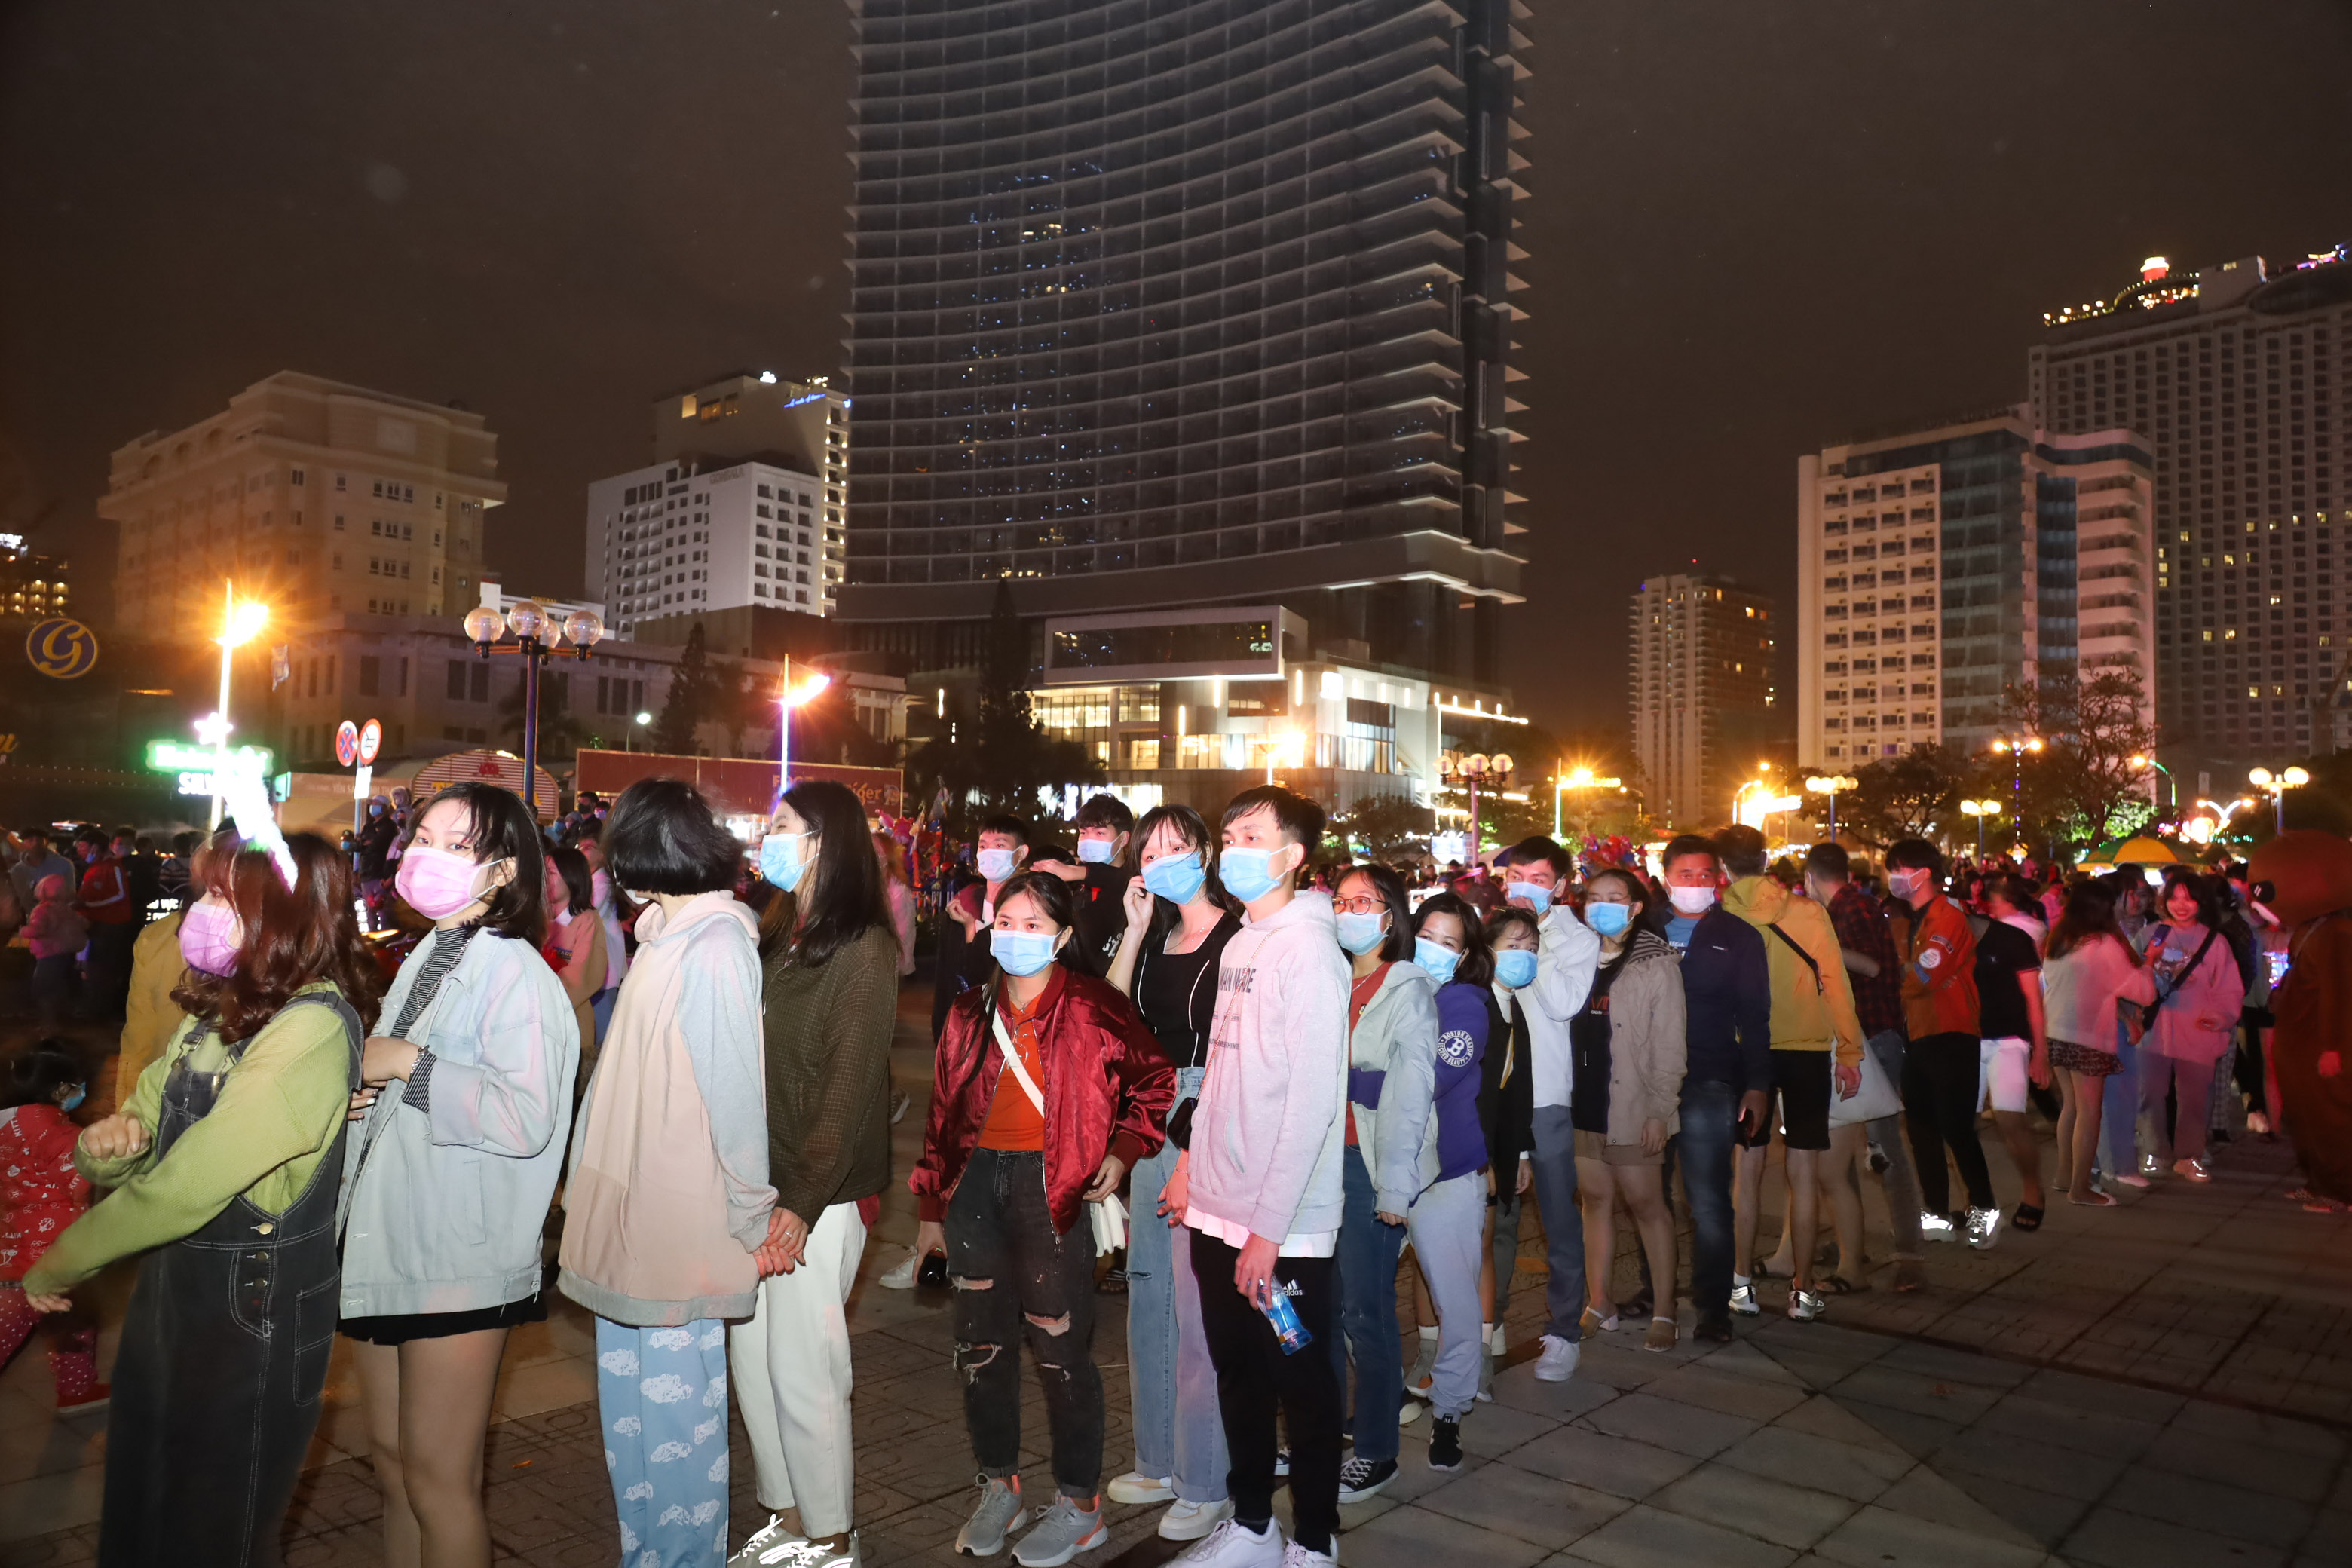 Queue of people waiting to get into music show area